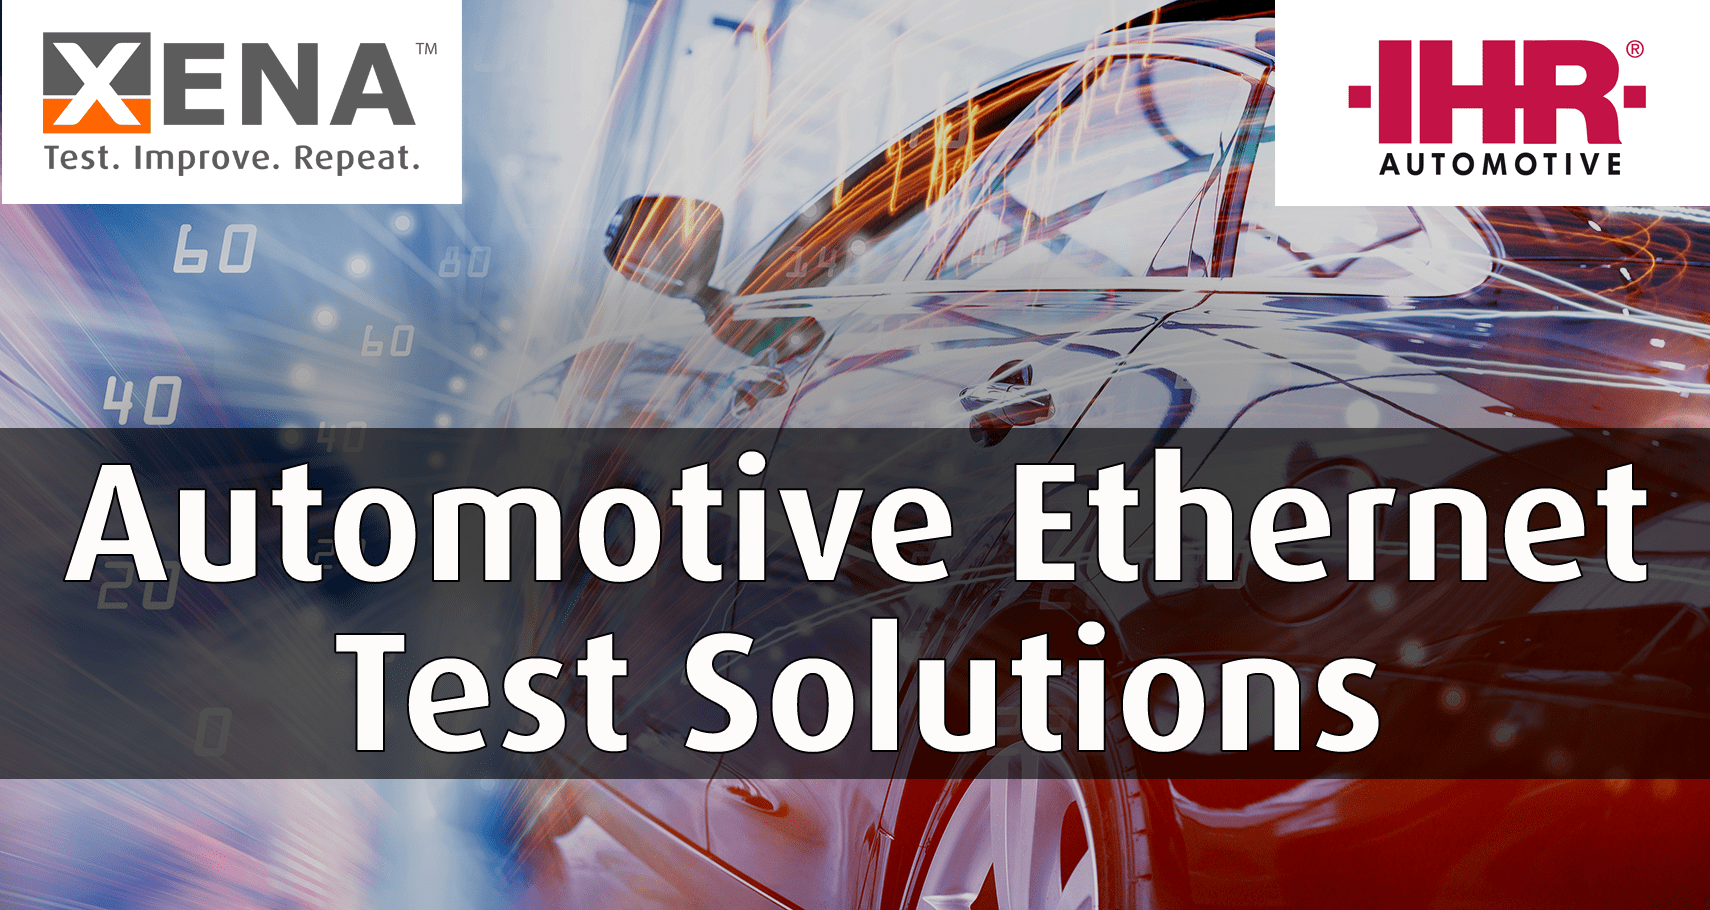 Xena appoints ihr Automotive as European Distributor for Automotive Ethernet Test Solutions